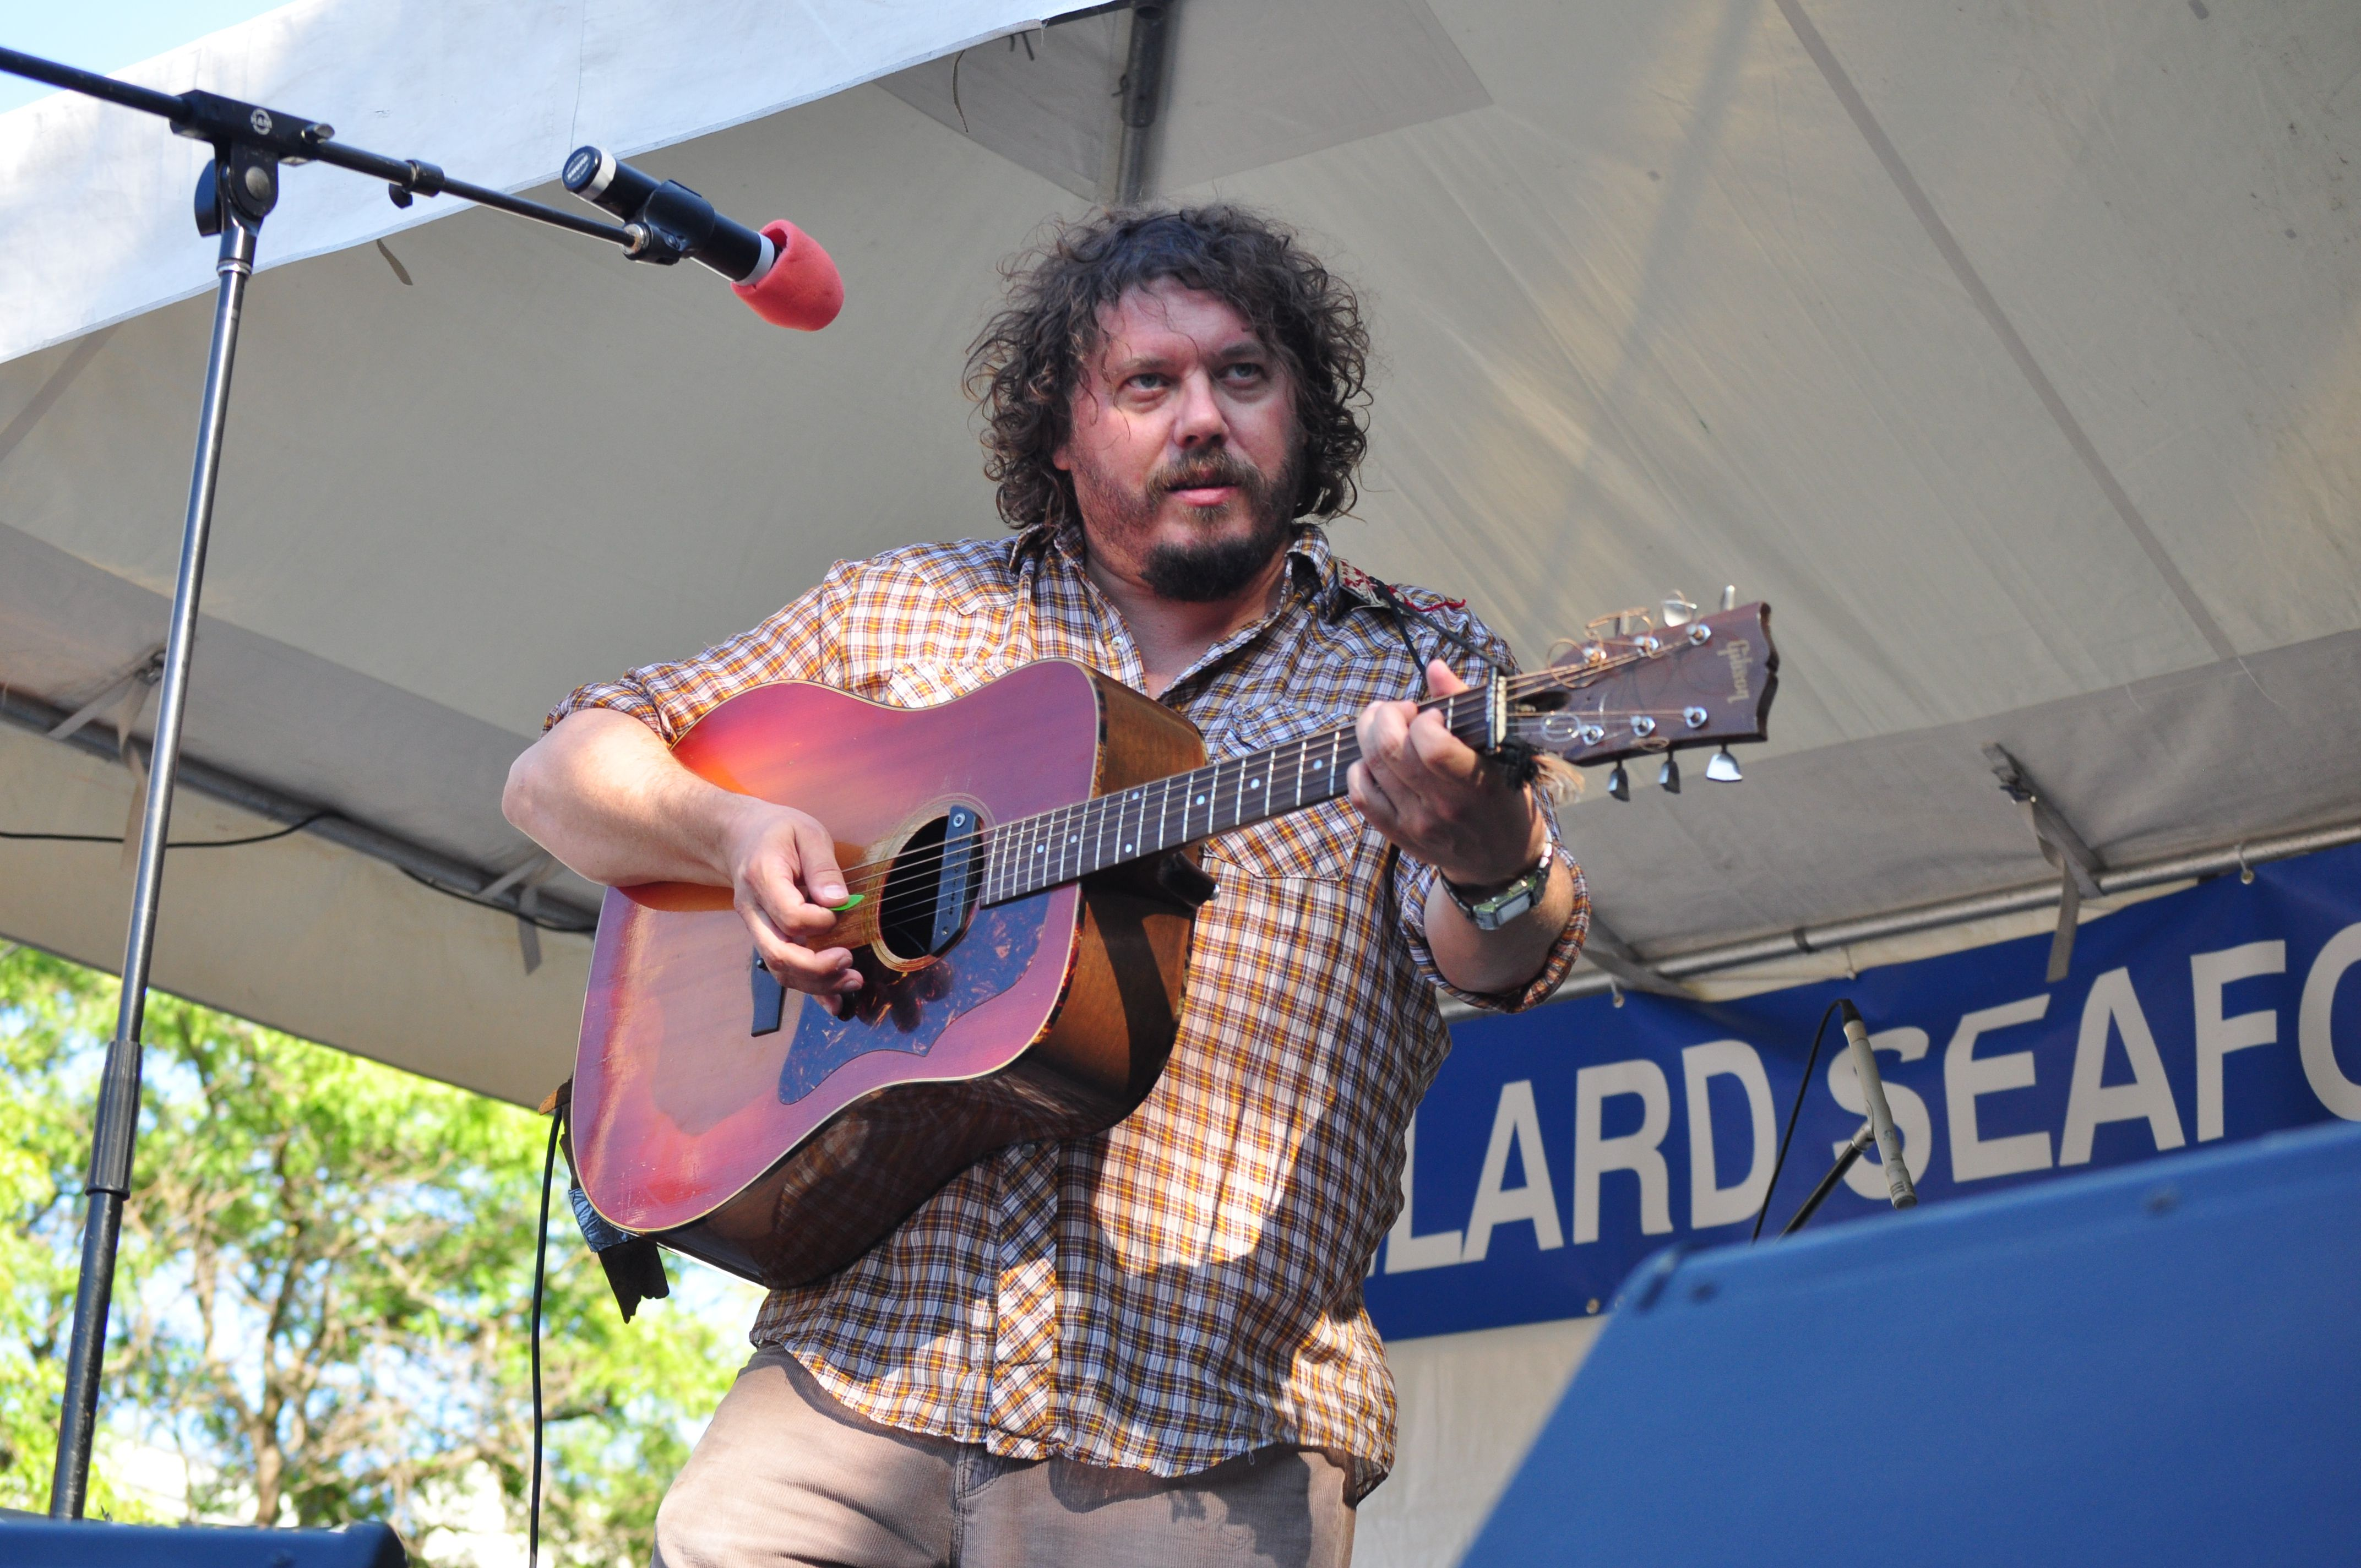 Bobby Bare Jr. performs at an outdoor concert